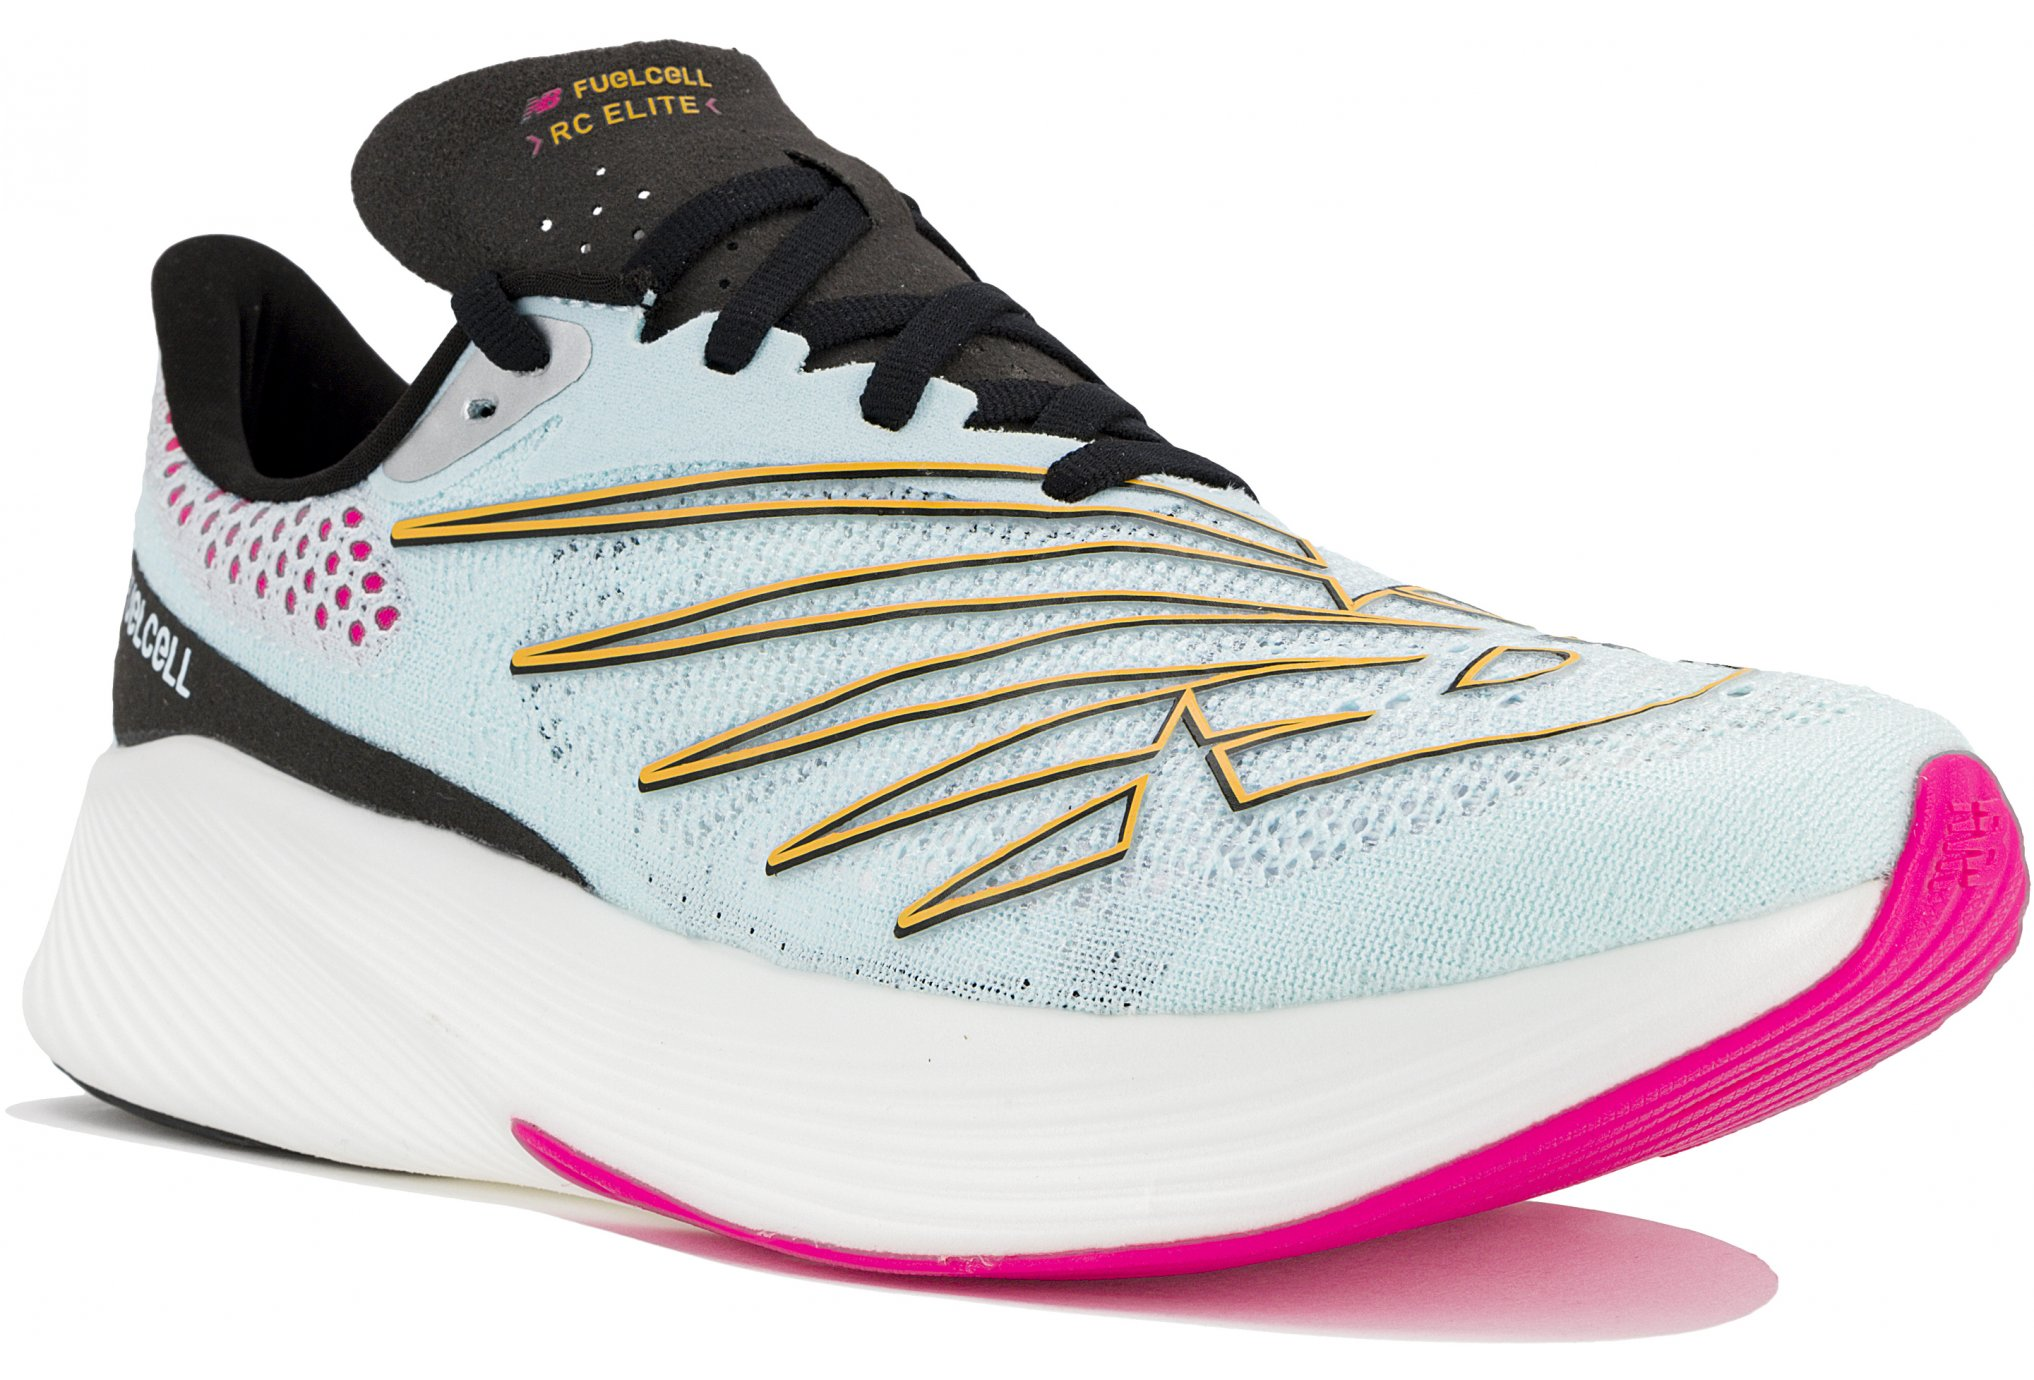 New Balance FuelCell RC Elite v2 W Chaussures running femme